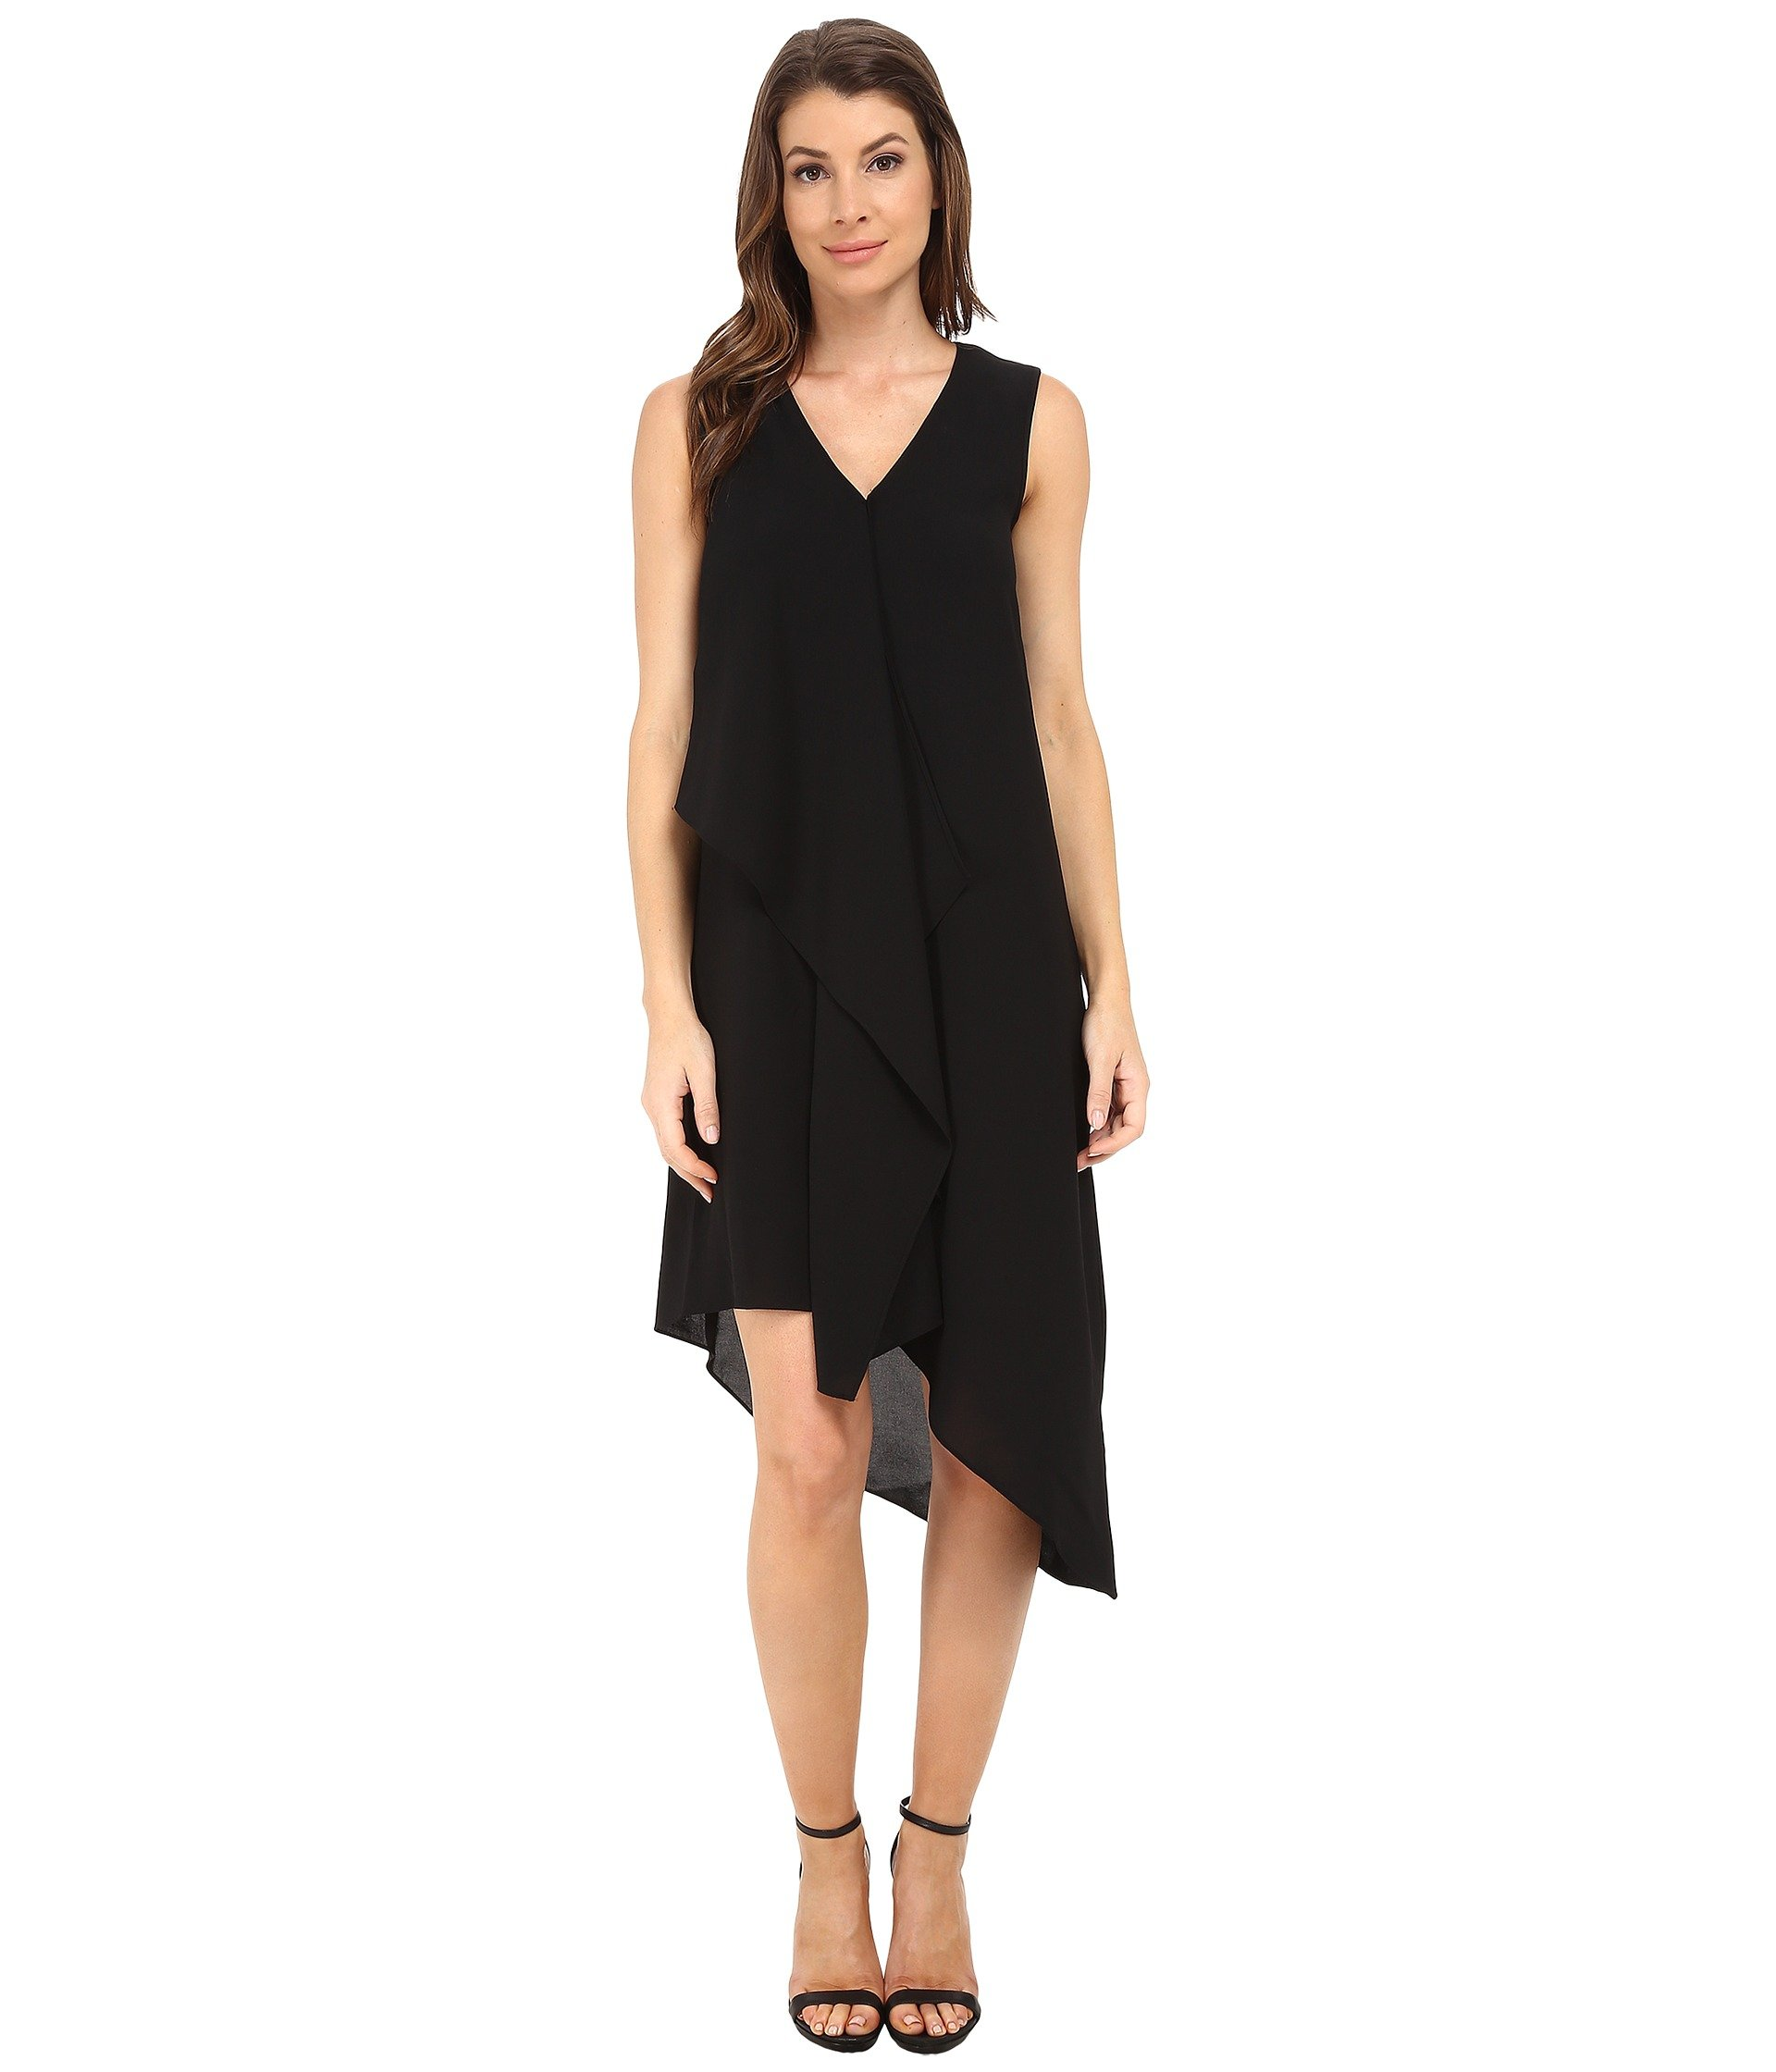 Vestido para Mujer Adrianna Papell Asymmetrical Front Drape Dress  + Adrianna Papell en VeoyCompro.net